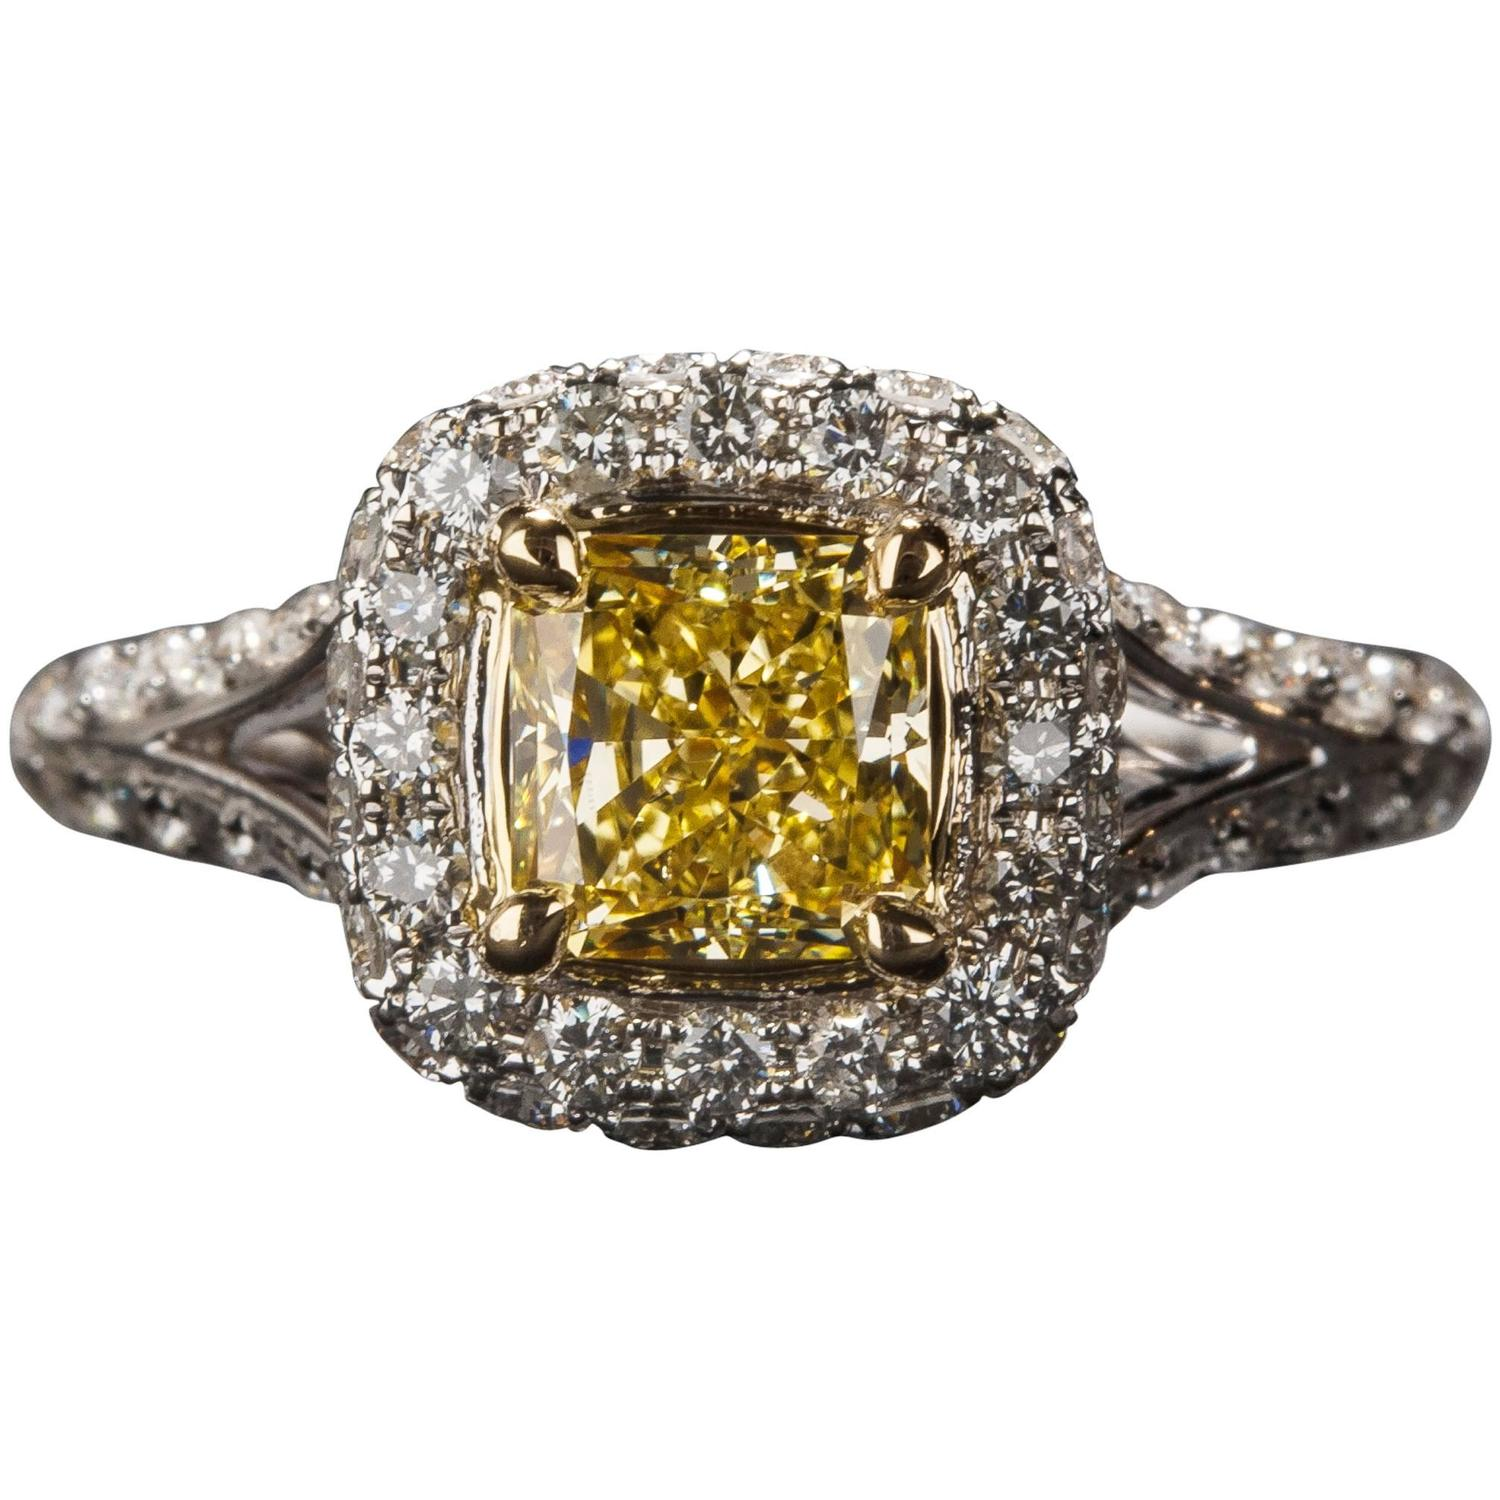 1 00ct Yellow Diamond Ring For Sale at 1stdibs